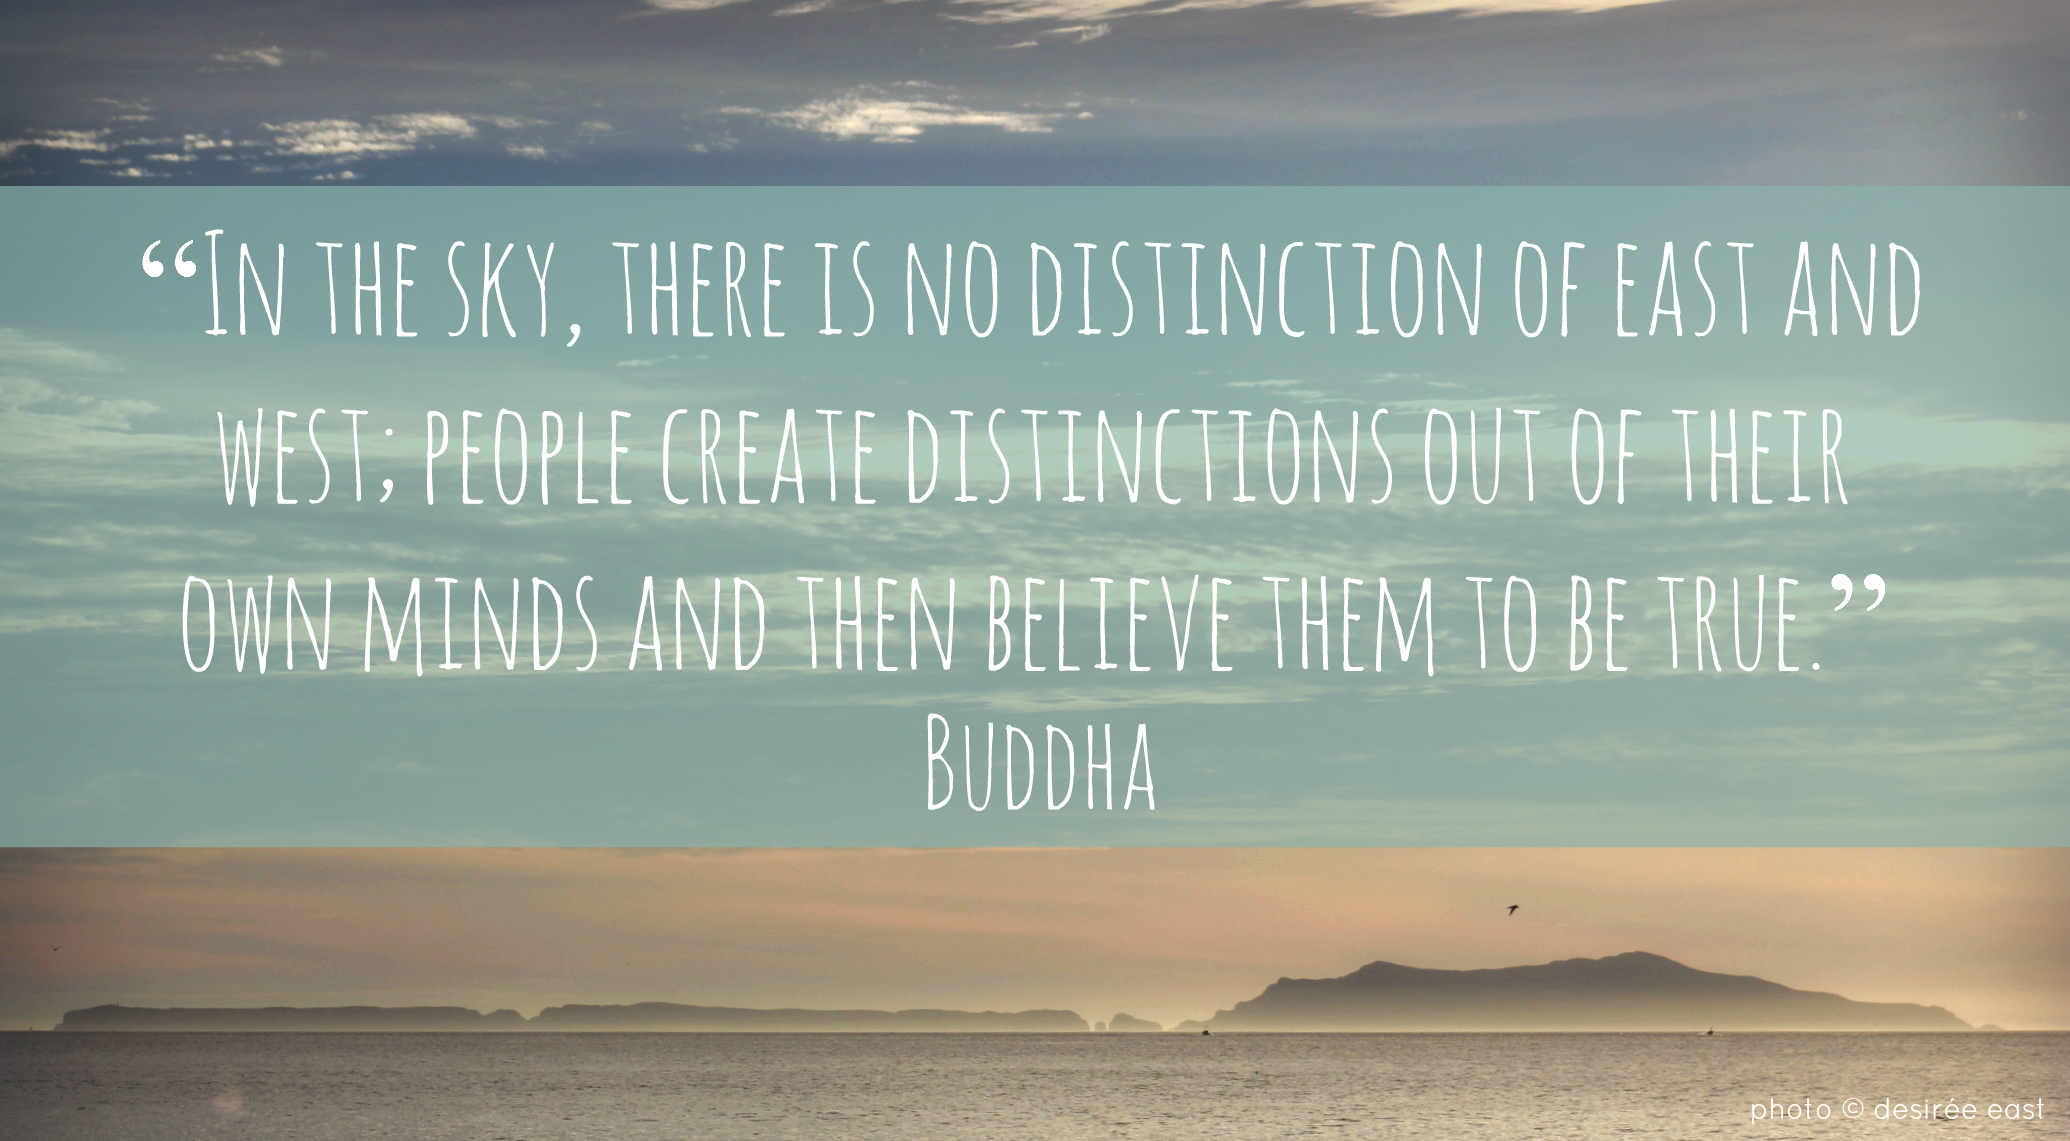 weekly-photo-challenge-perspective-buddha-the-wiser-by-desiree-east.jpg